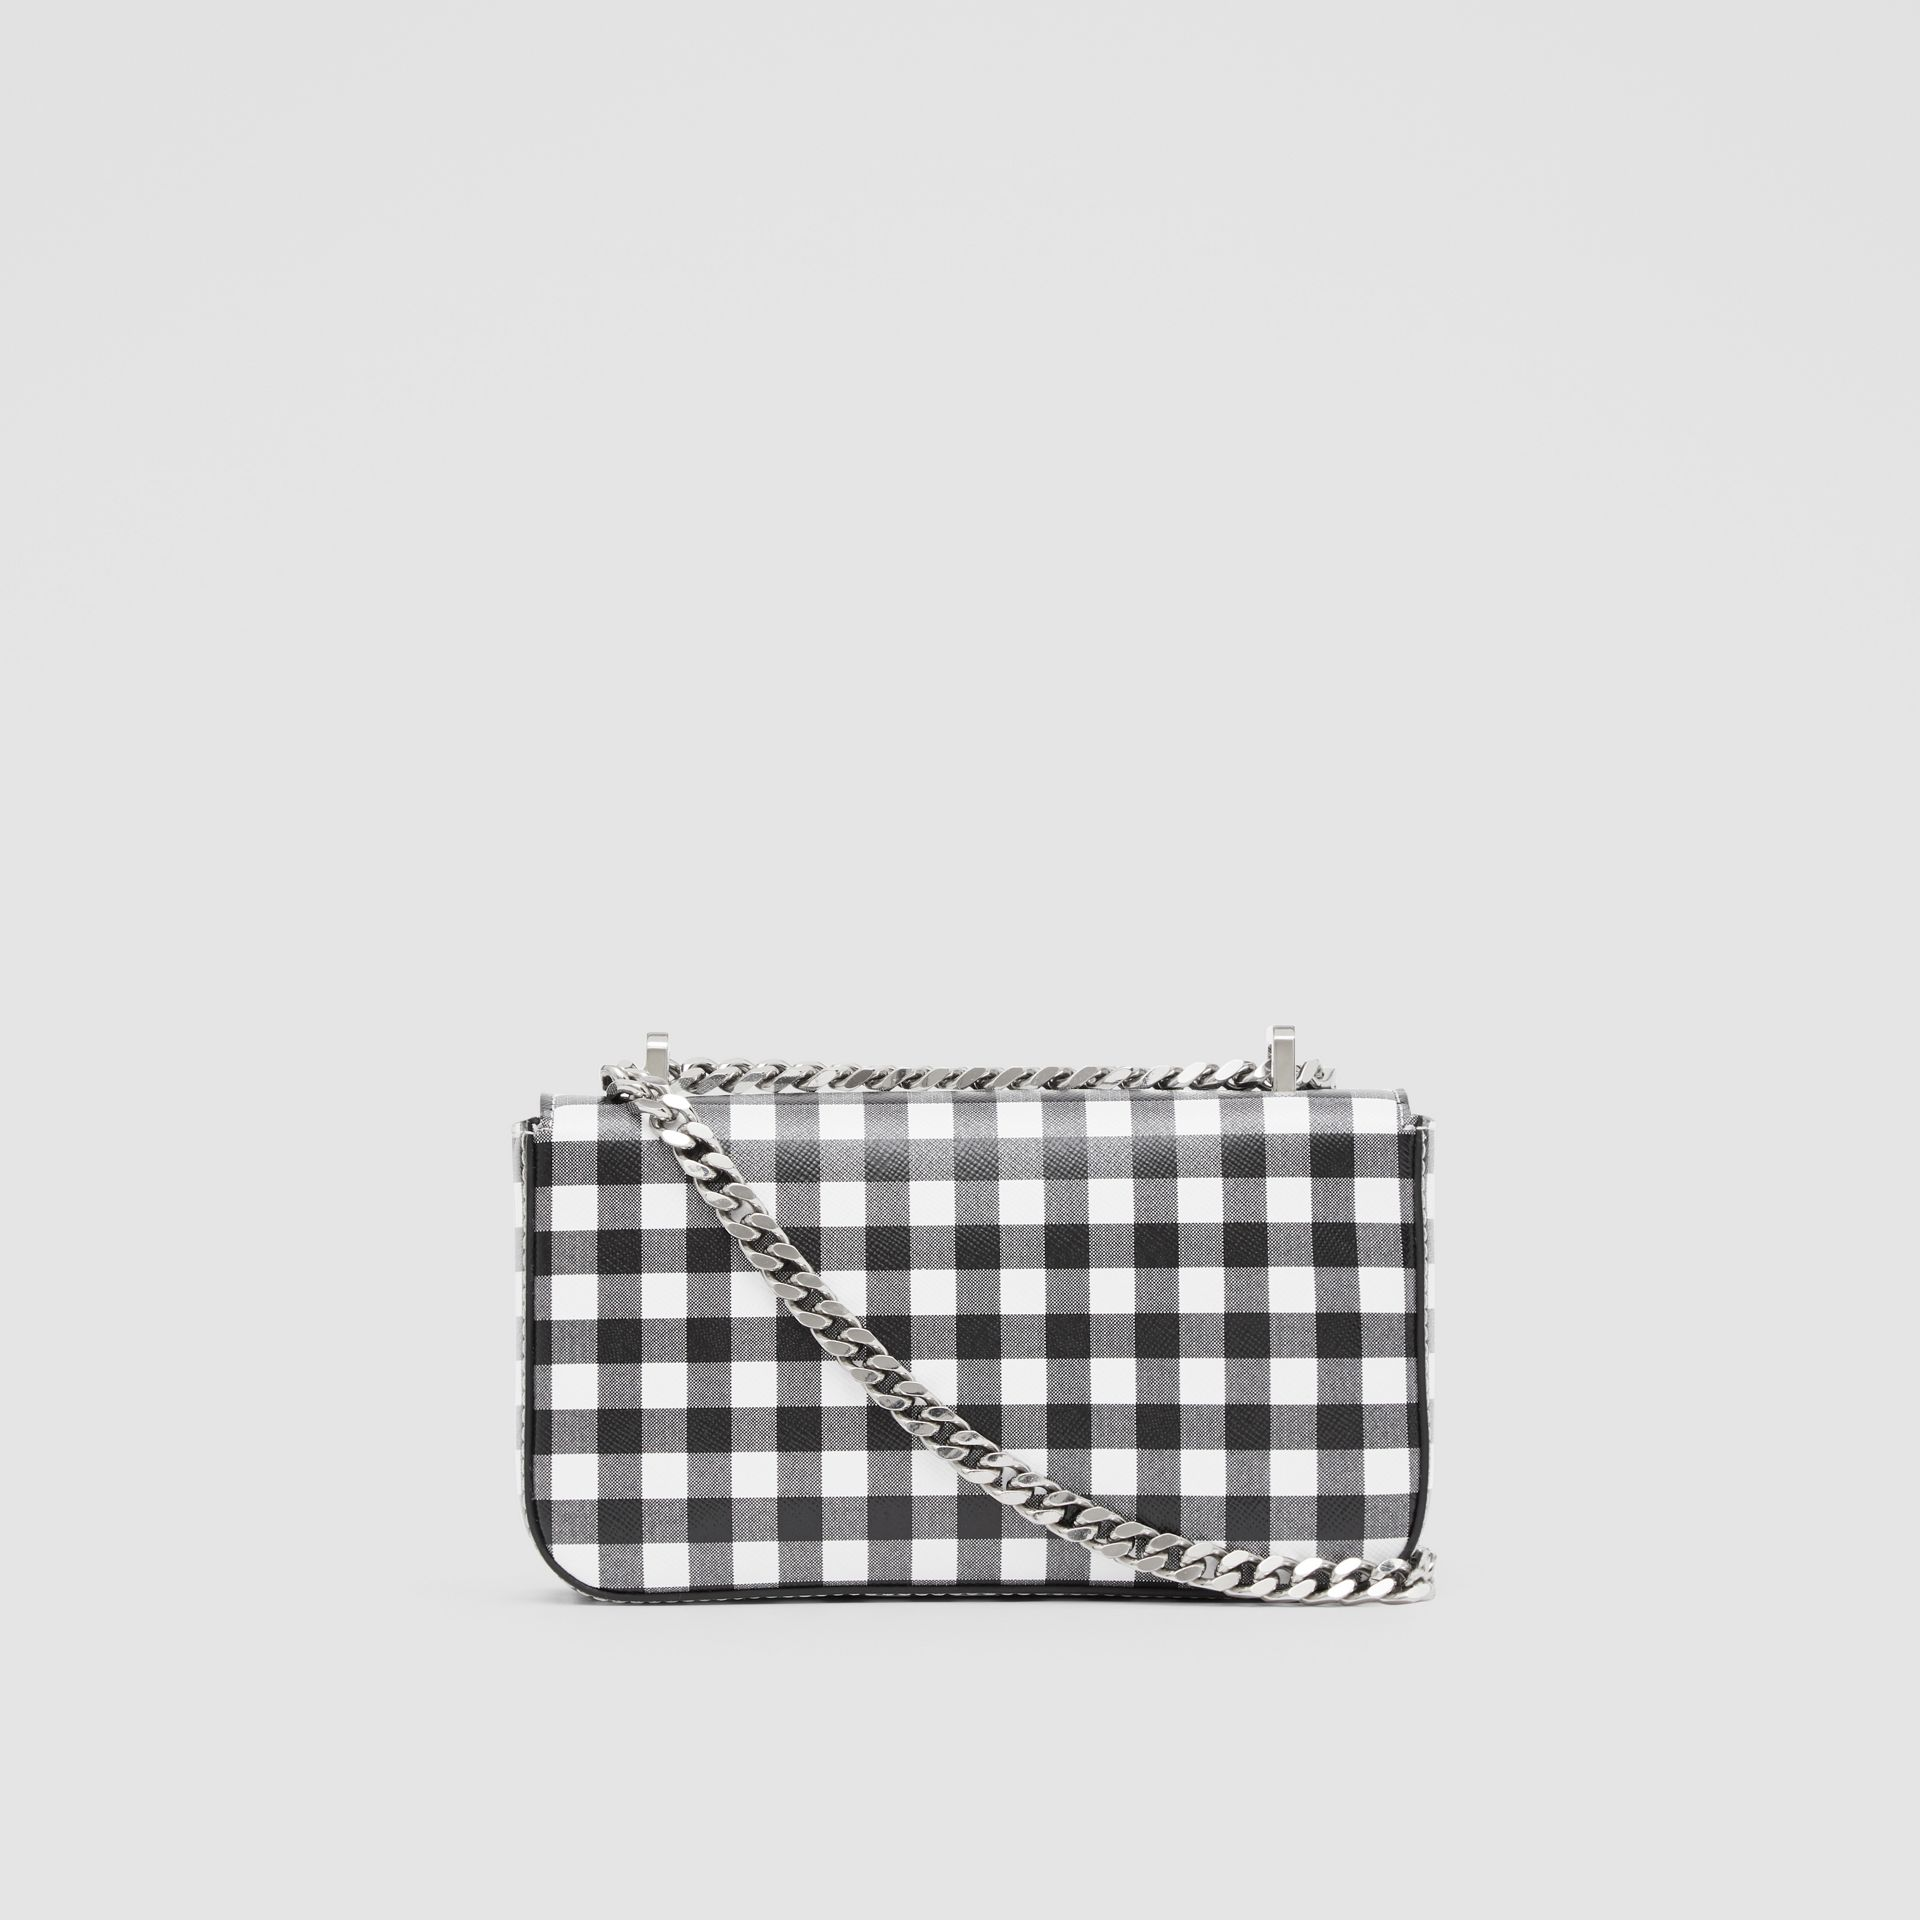 Mini Gingham Leather Lola Bag in Black/white - Women | Burberry - gallery image 7